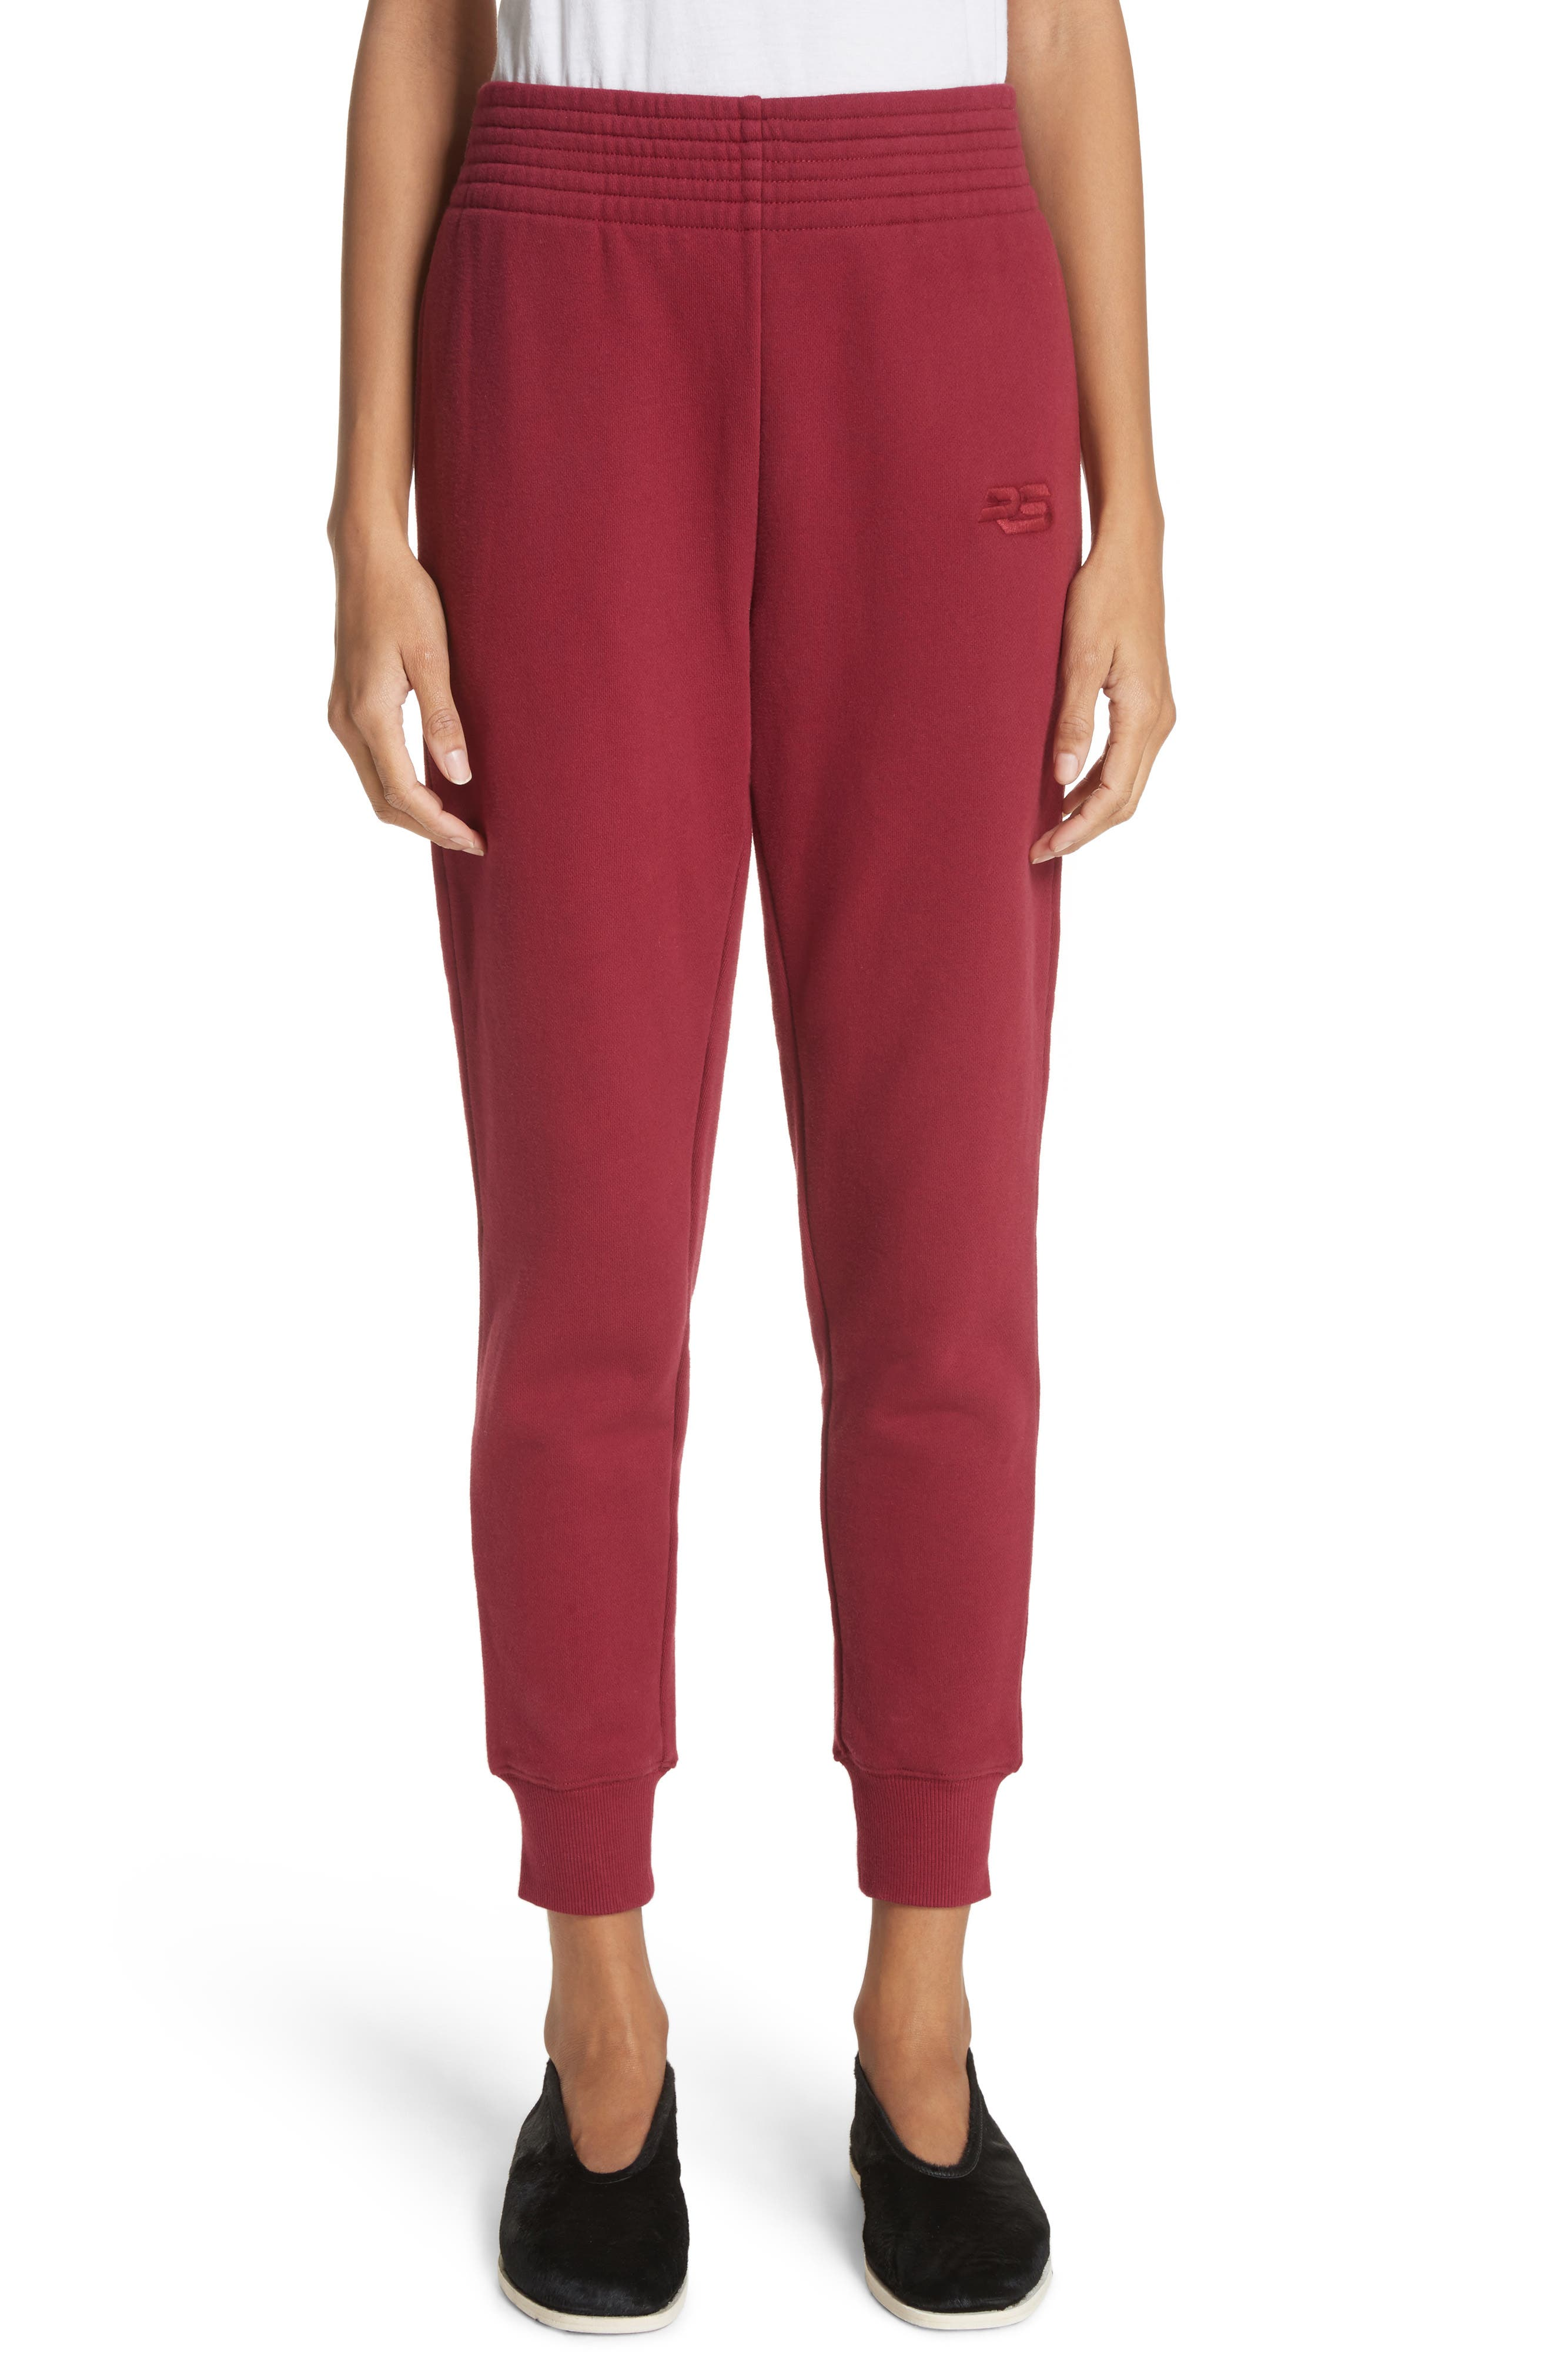 PSWL Sweatpants,                         Main,                         color, Burgundy